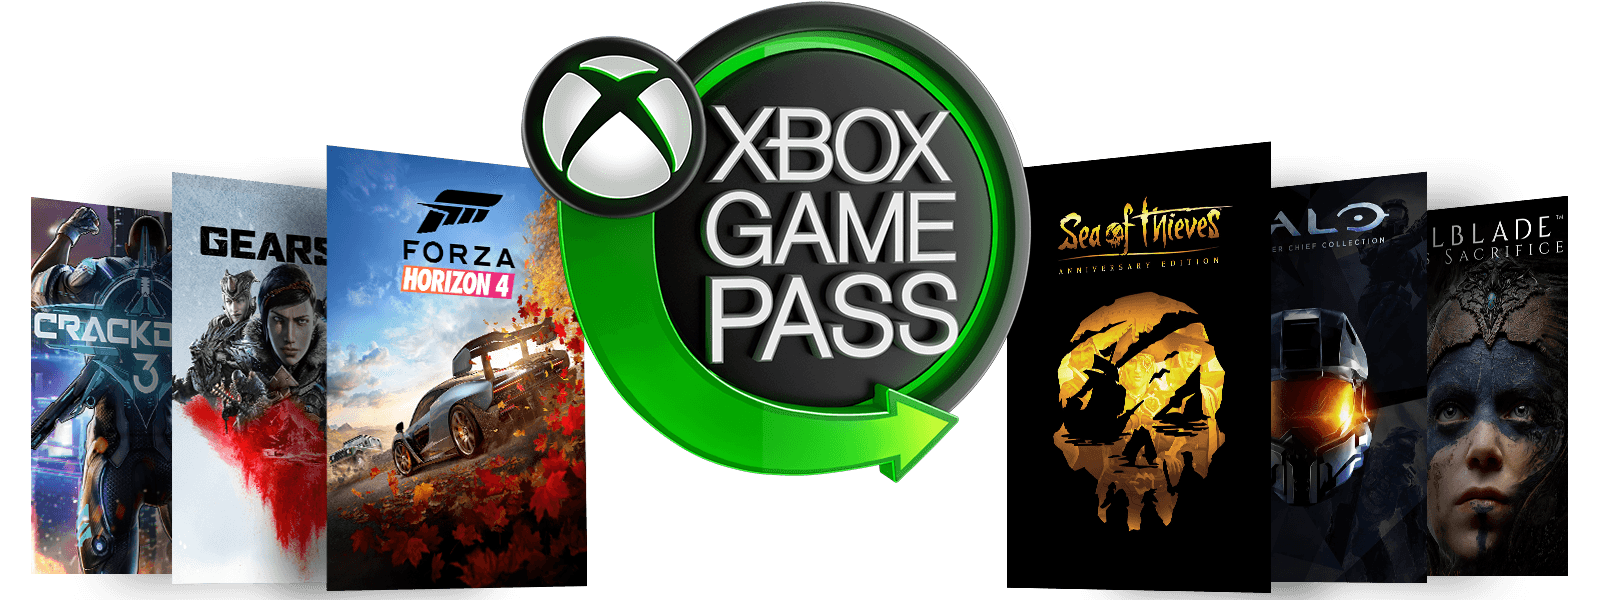 Přebaly her Sea of Thieves, PlayerUnknowns Battlegrounds, Forza Horizon 4, Crackdown 3, Halo The Master Chief Collection a Hellblade: Senua's Sacrifice obklopující zelené neonové logo Xbox Game Pass